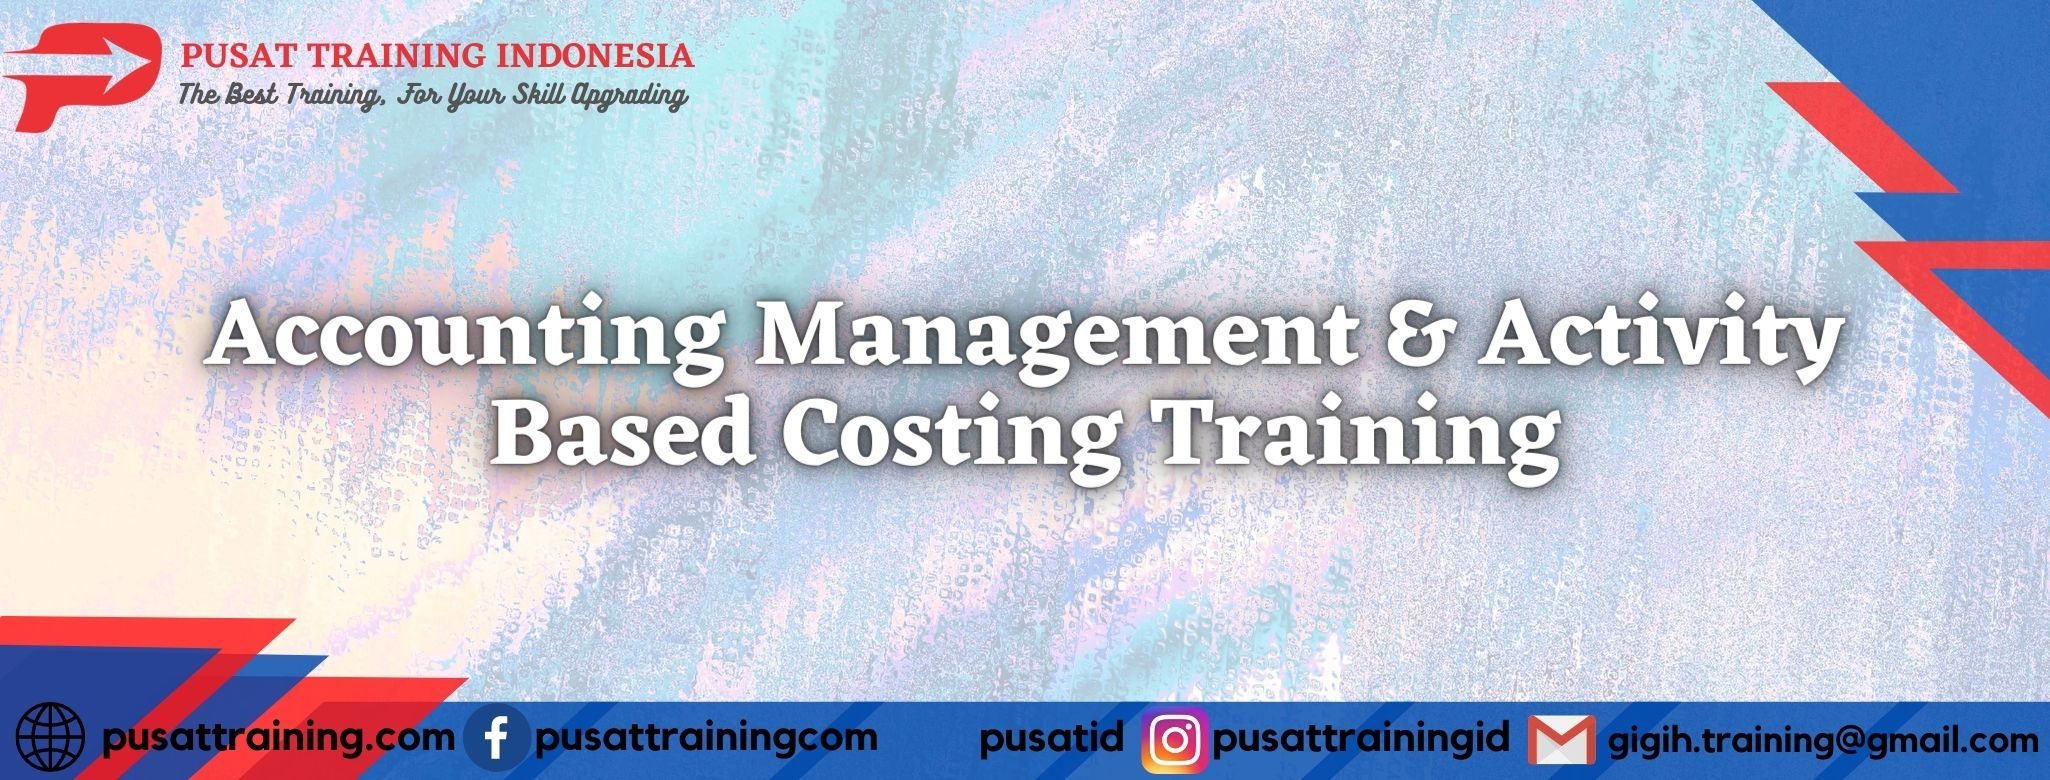 Accounting-Management-Activity-Based-Costing-Training